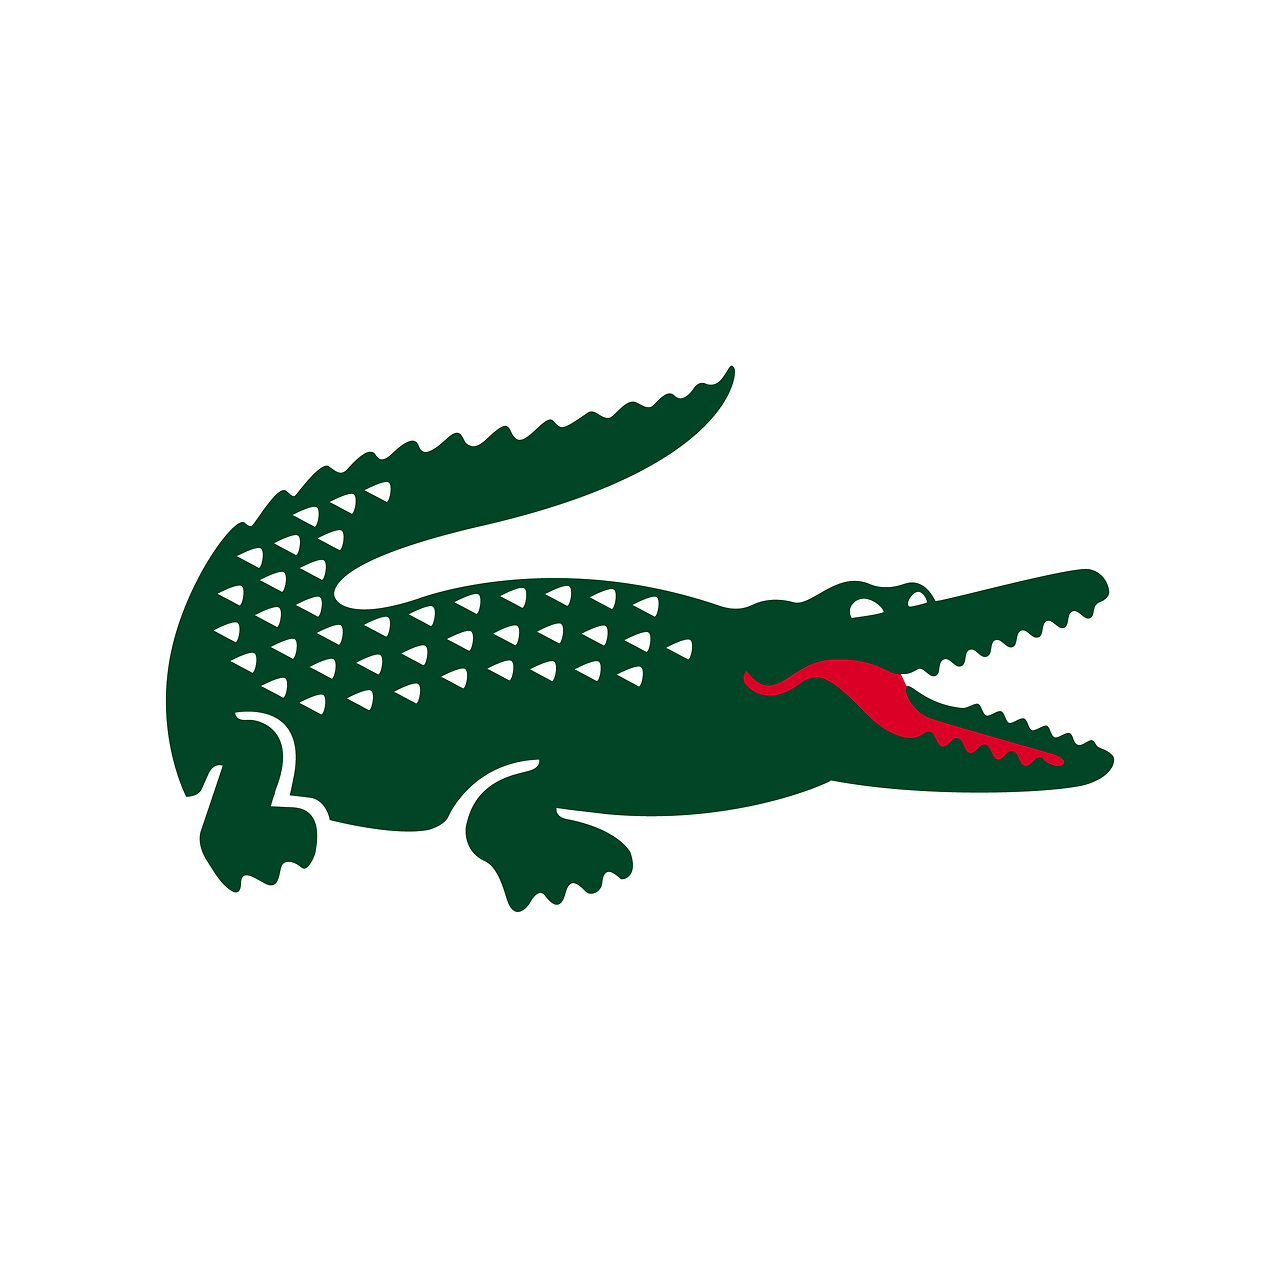 Lacoste Designer Robert George Firm In House Year 1927 Logodesign Lacoste Adidas Logo Wallpapers Logo Design